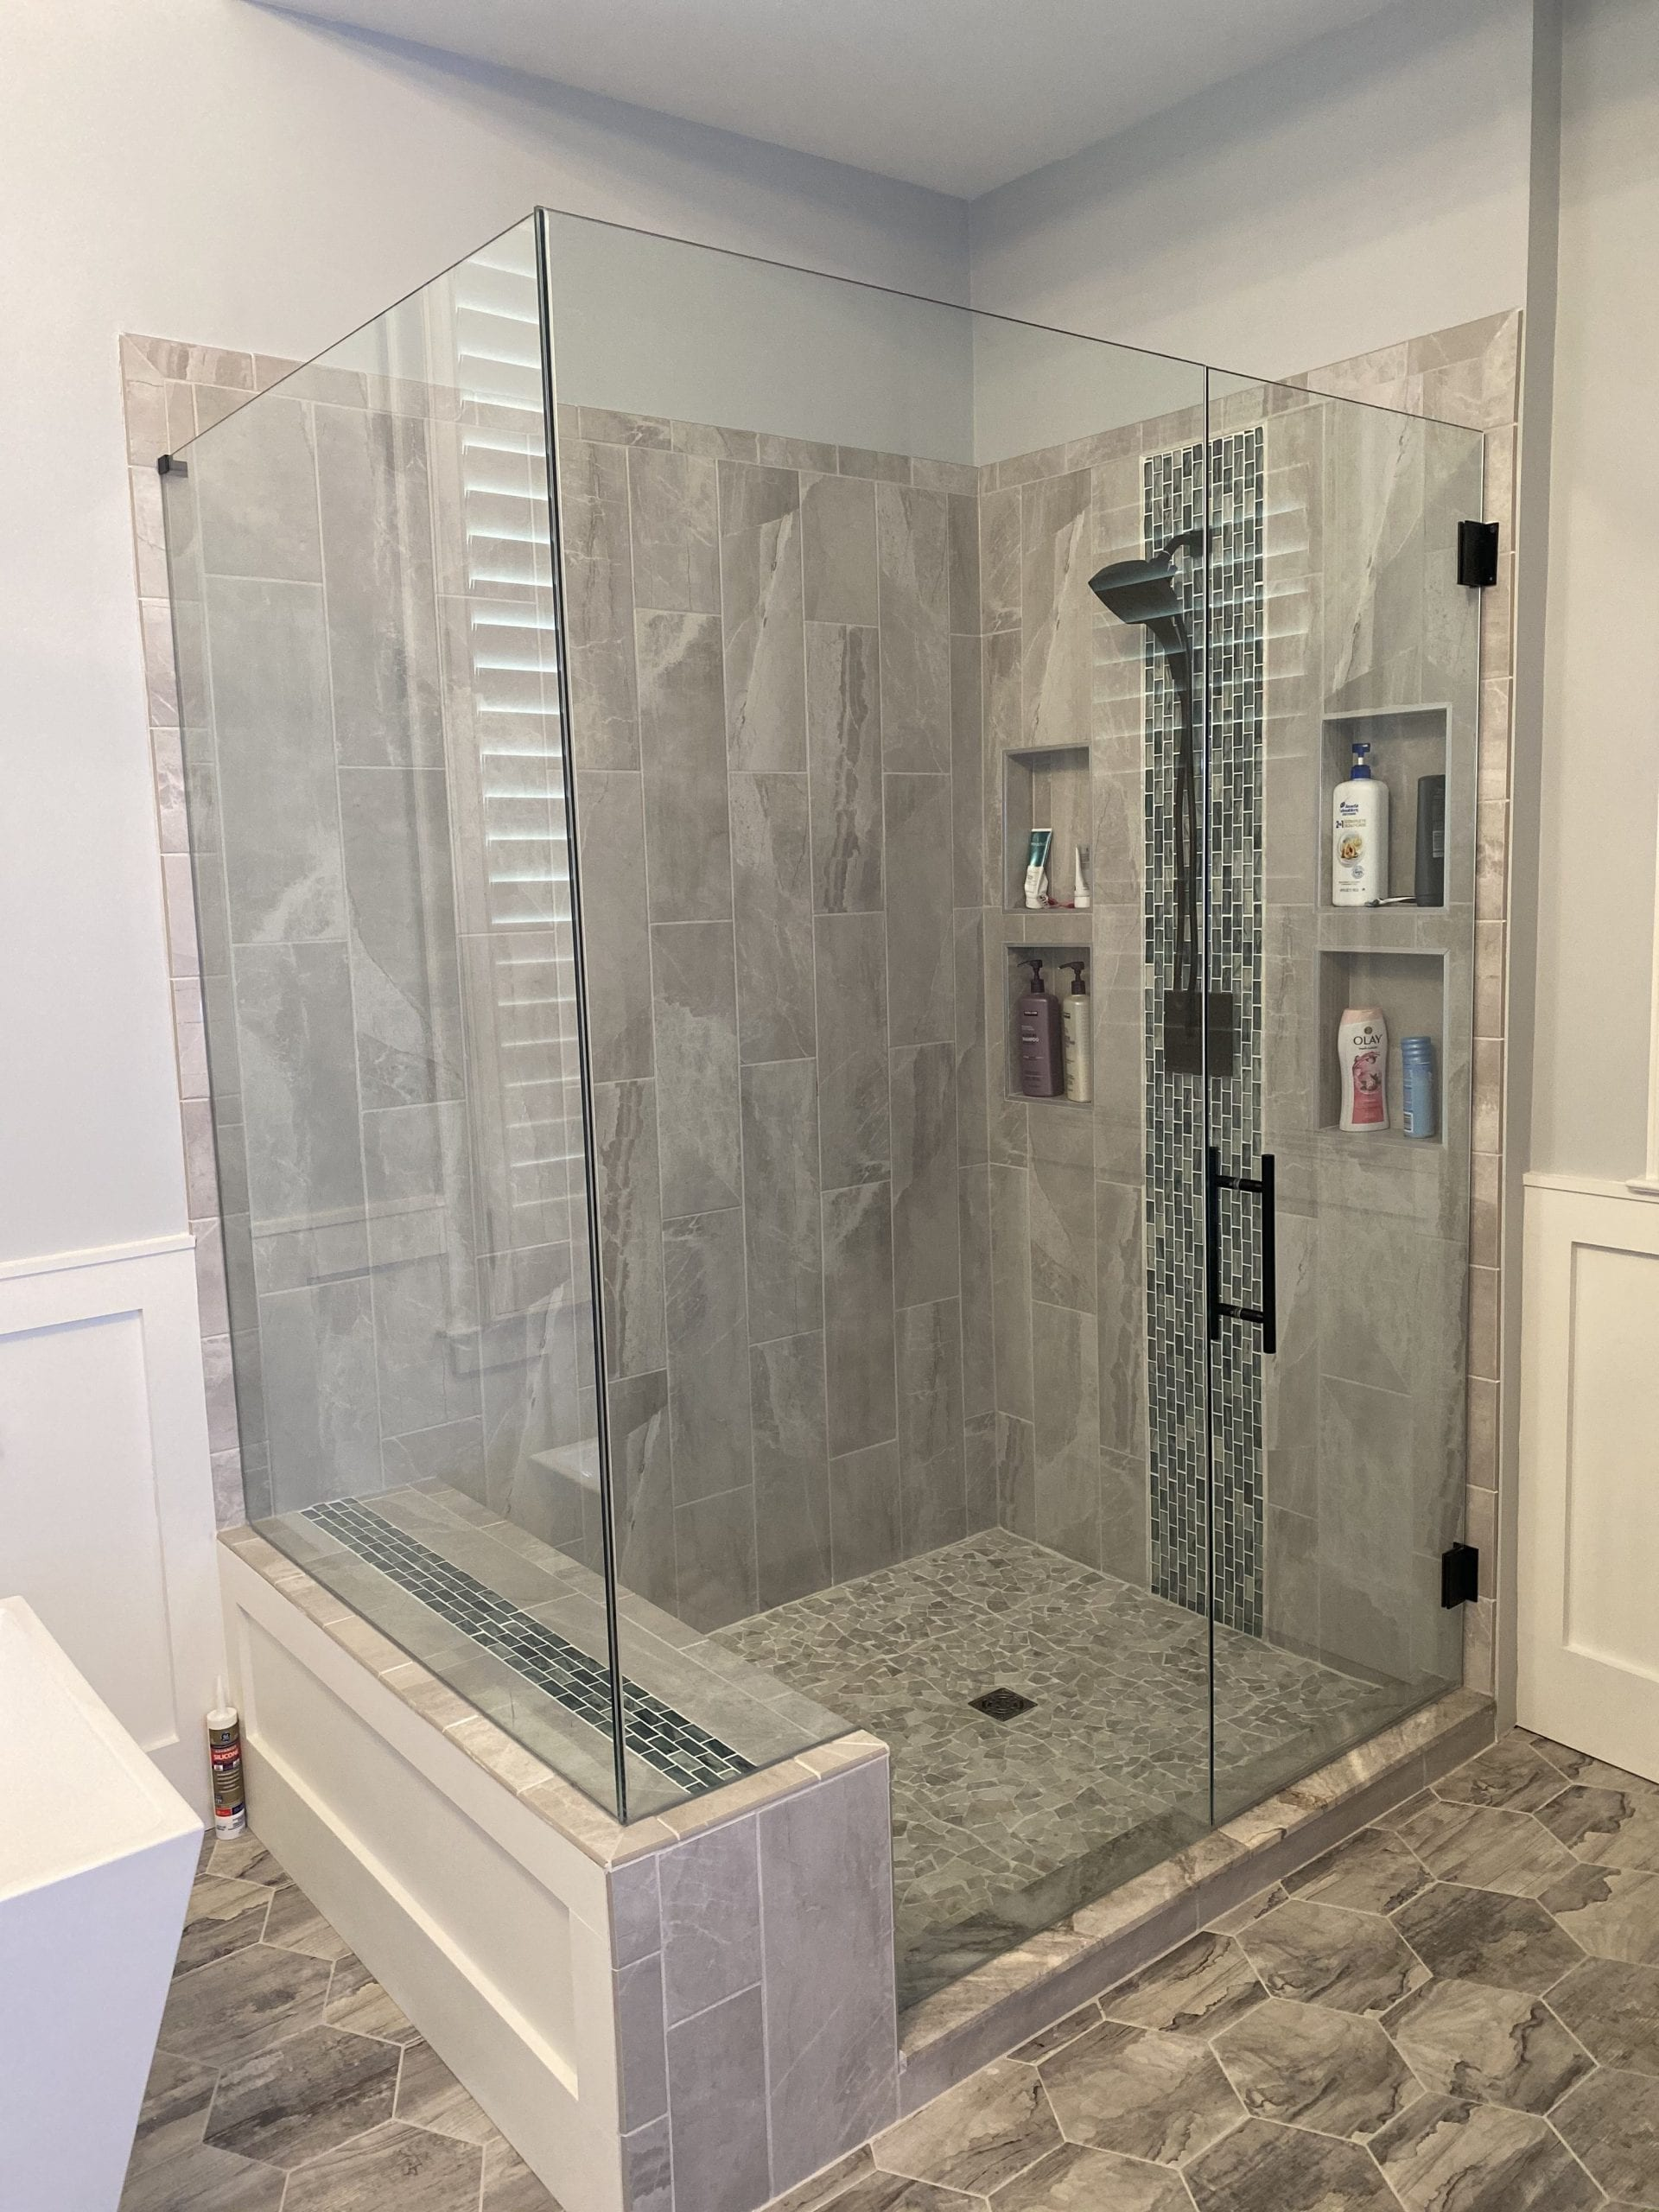 rotated custom bathroom mirrors and decorative glass from Shower Doors of Nashville